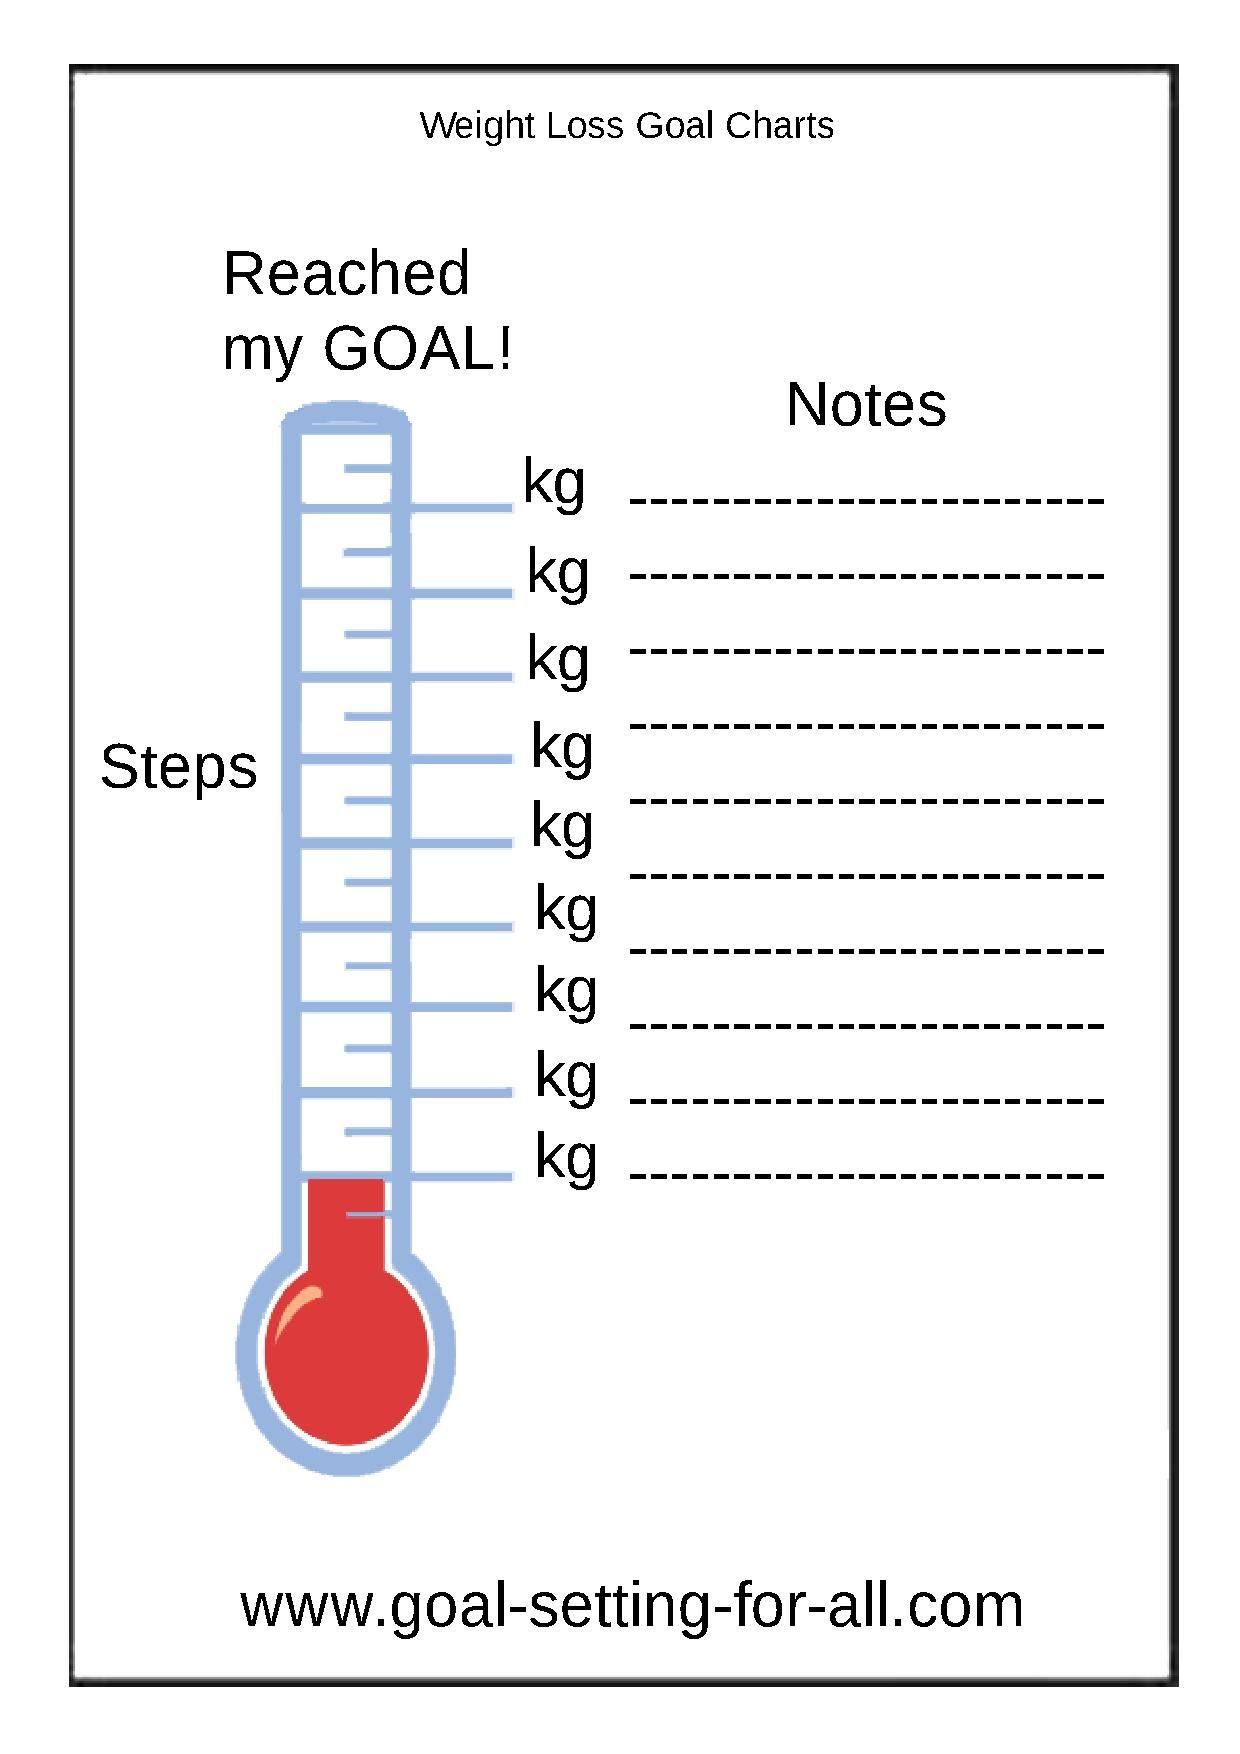 Weight Loss Goal Setting Chart